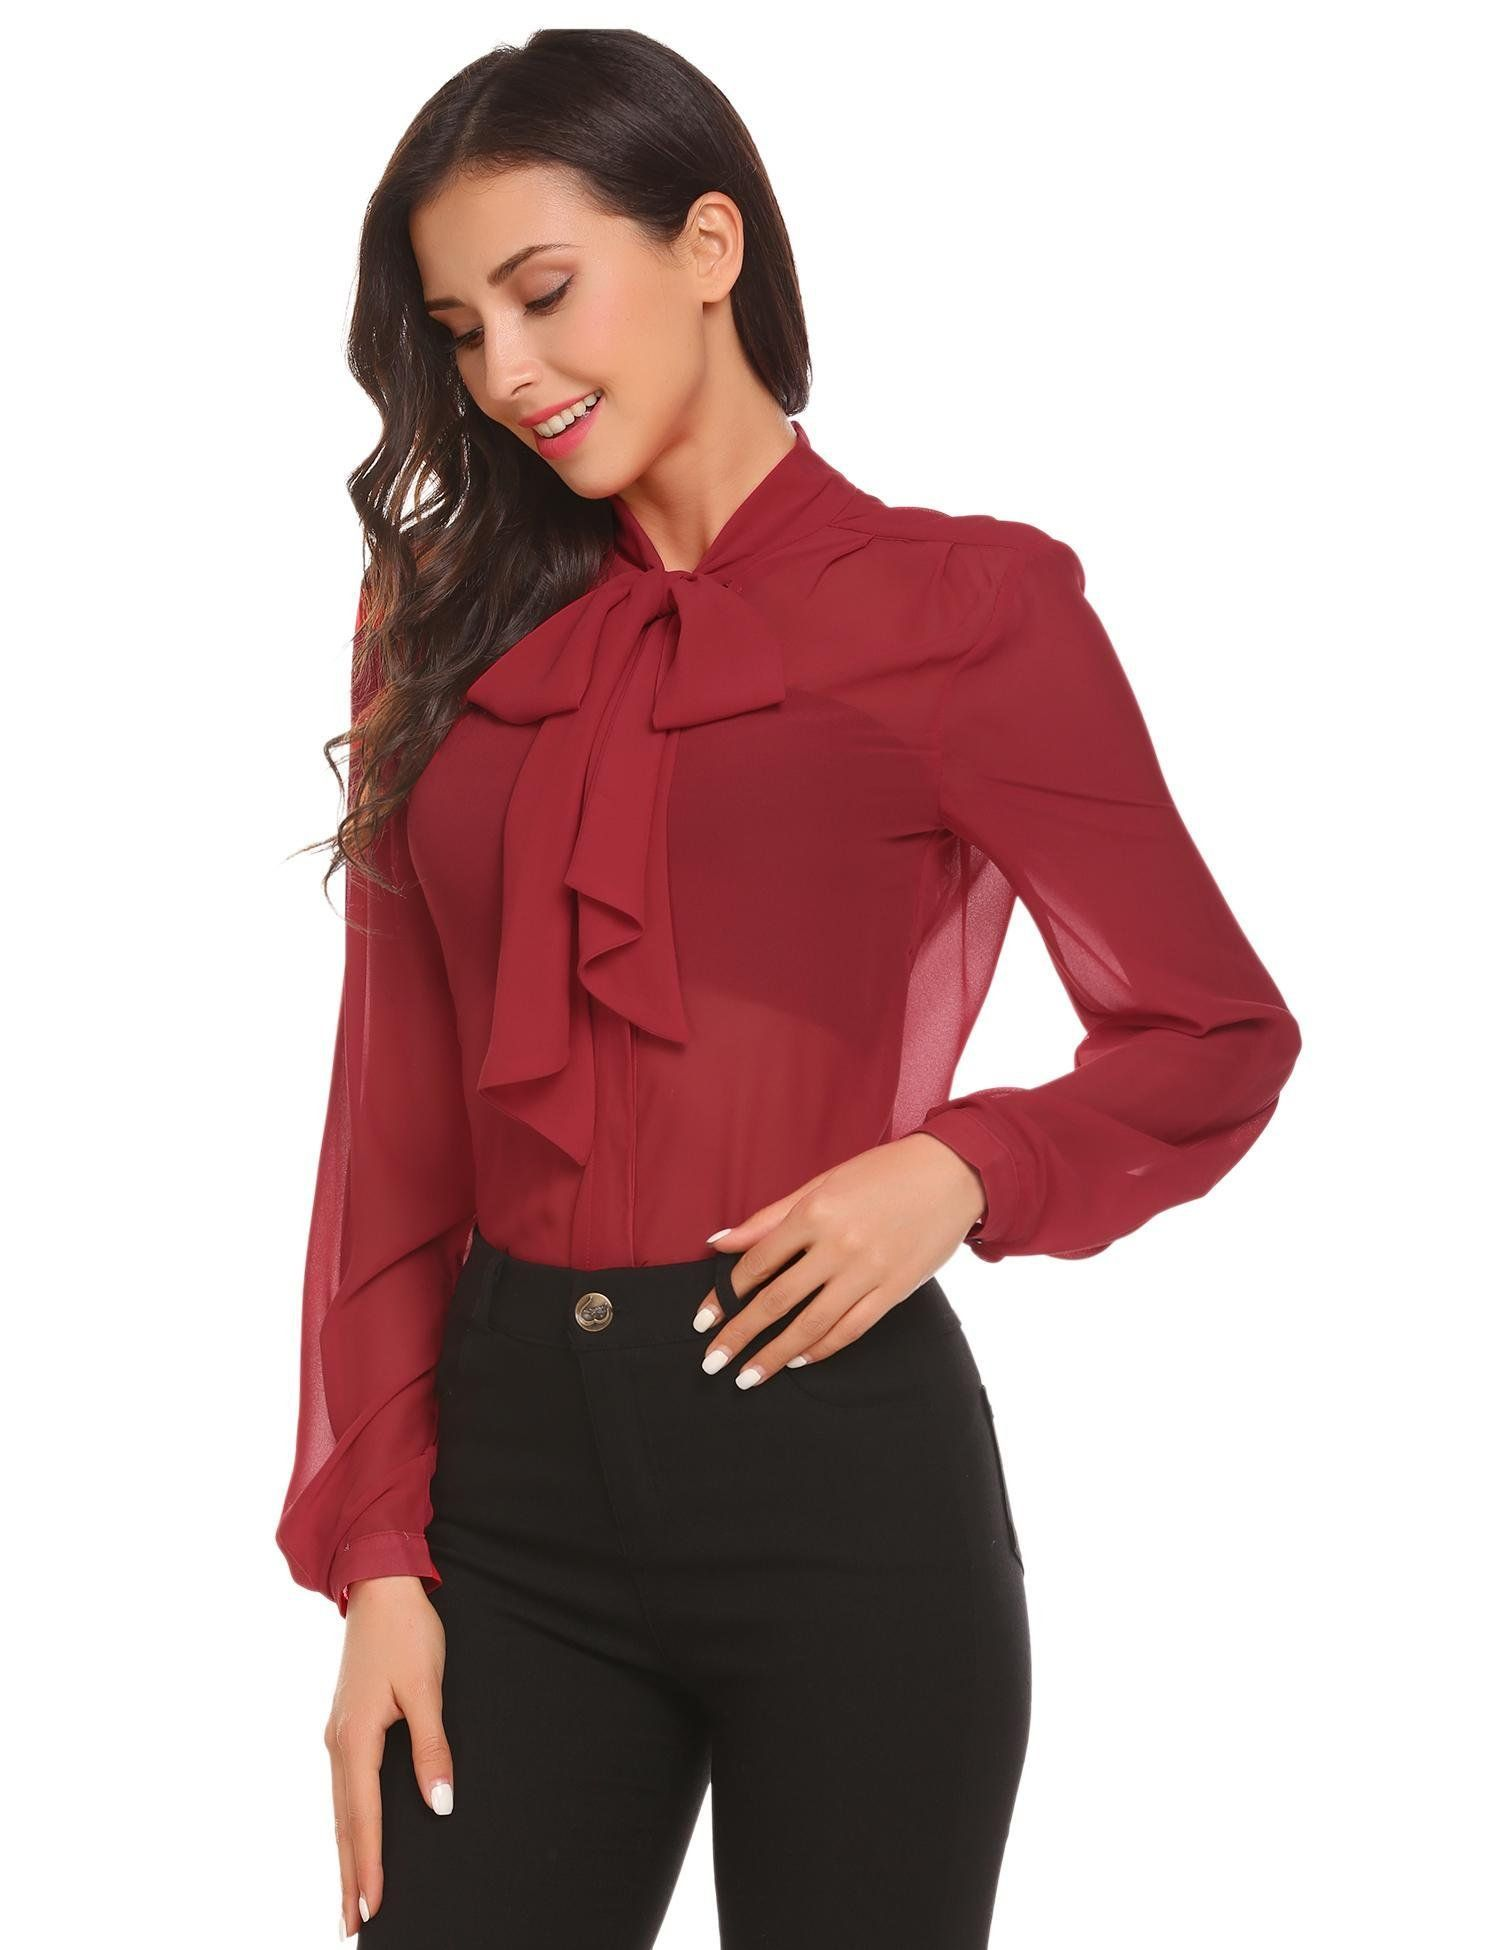 1b68799e404515 Zeagoo Women Red Bow Tie Chiffon Blouse See Through Work Business Shirt  TopsMedium3wine Red >>> For more information, visit image link.